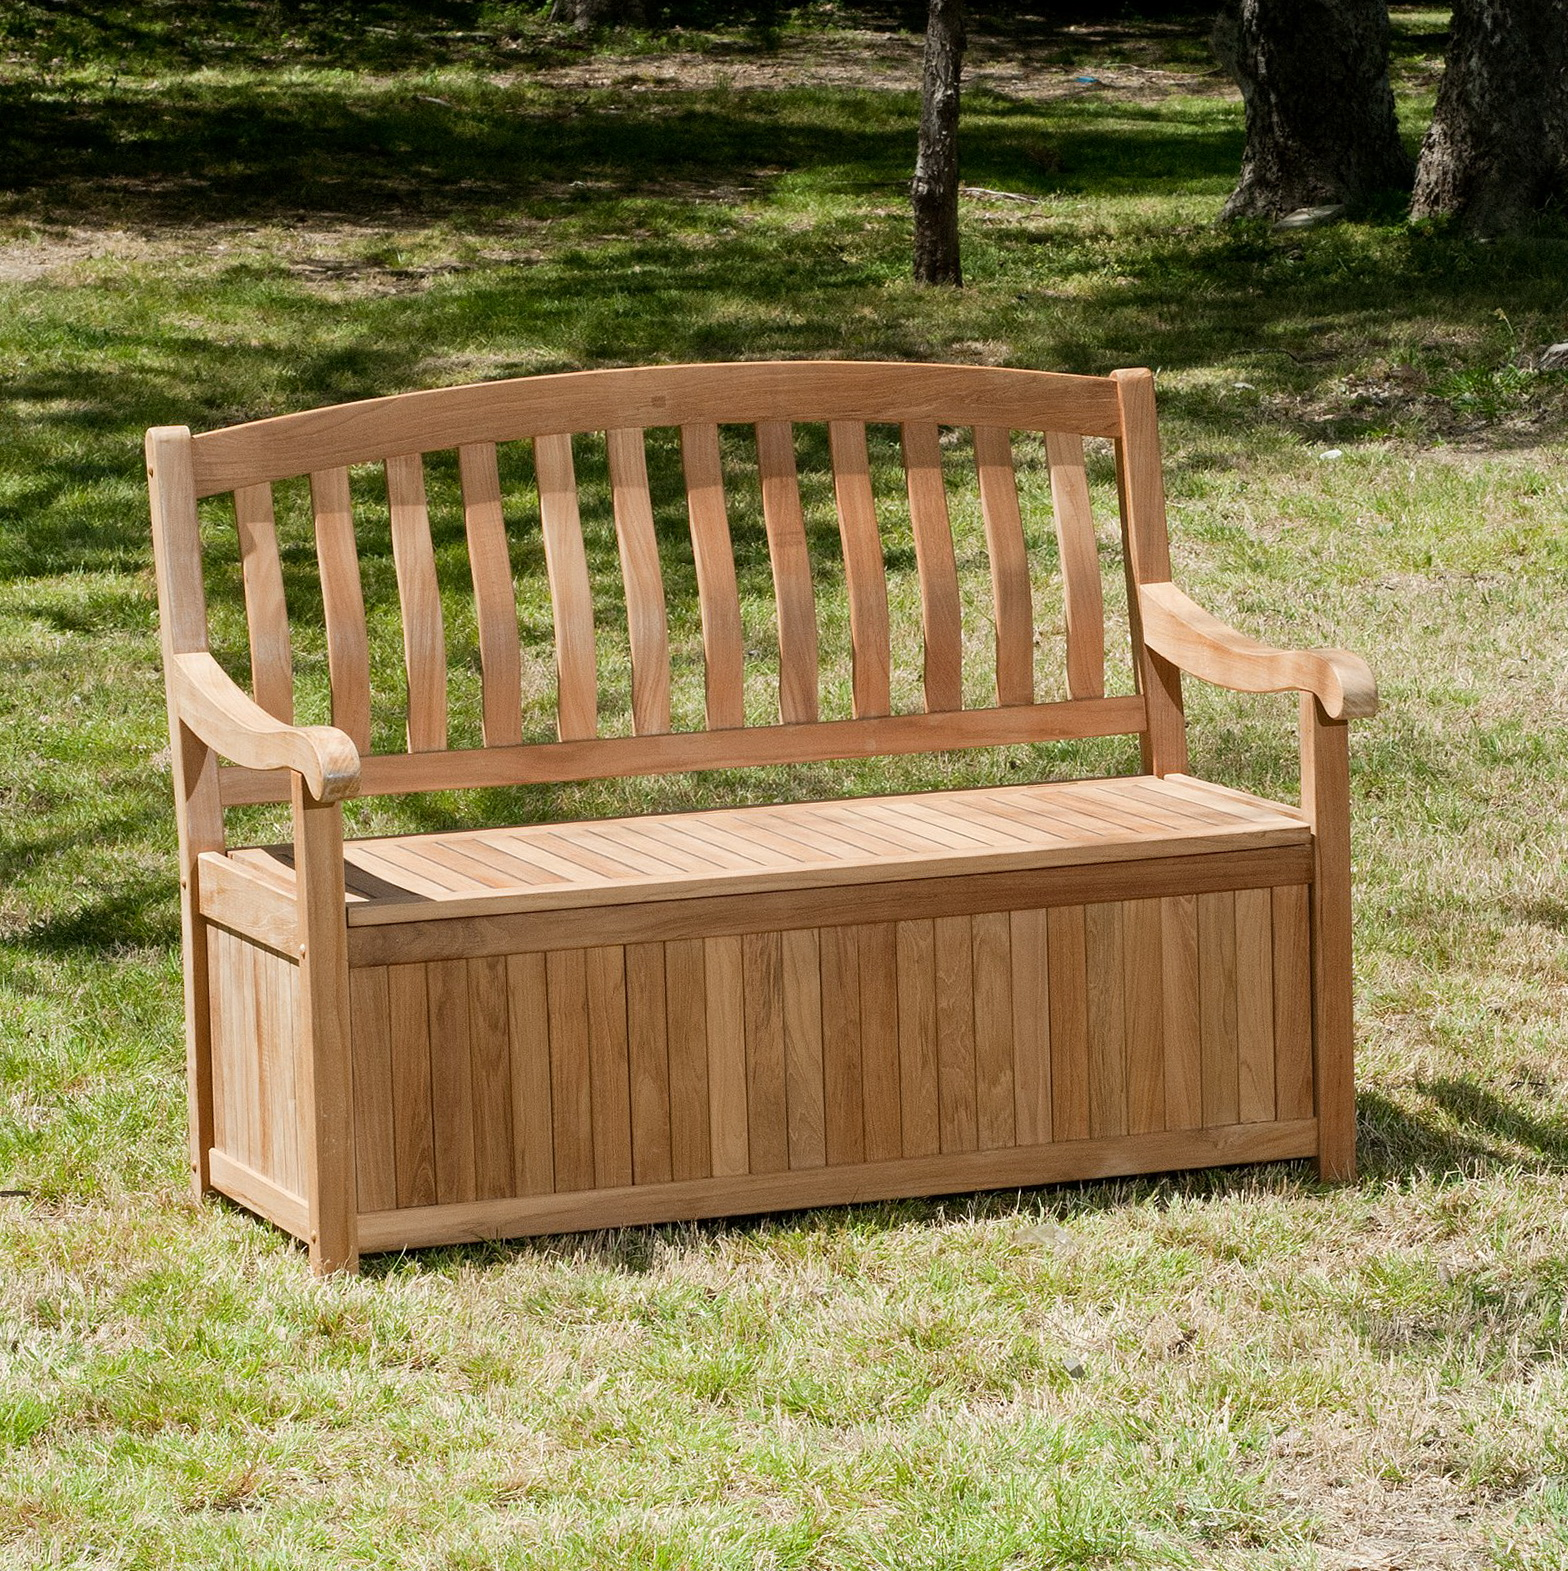 Outdoor Storage Bench Plans Home Design Ideas